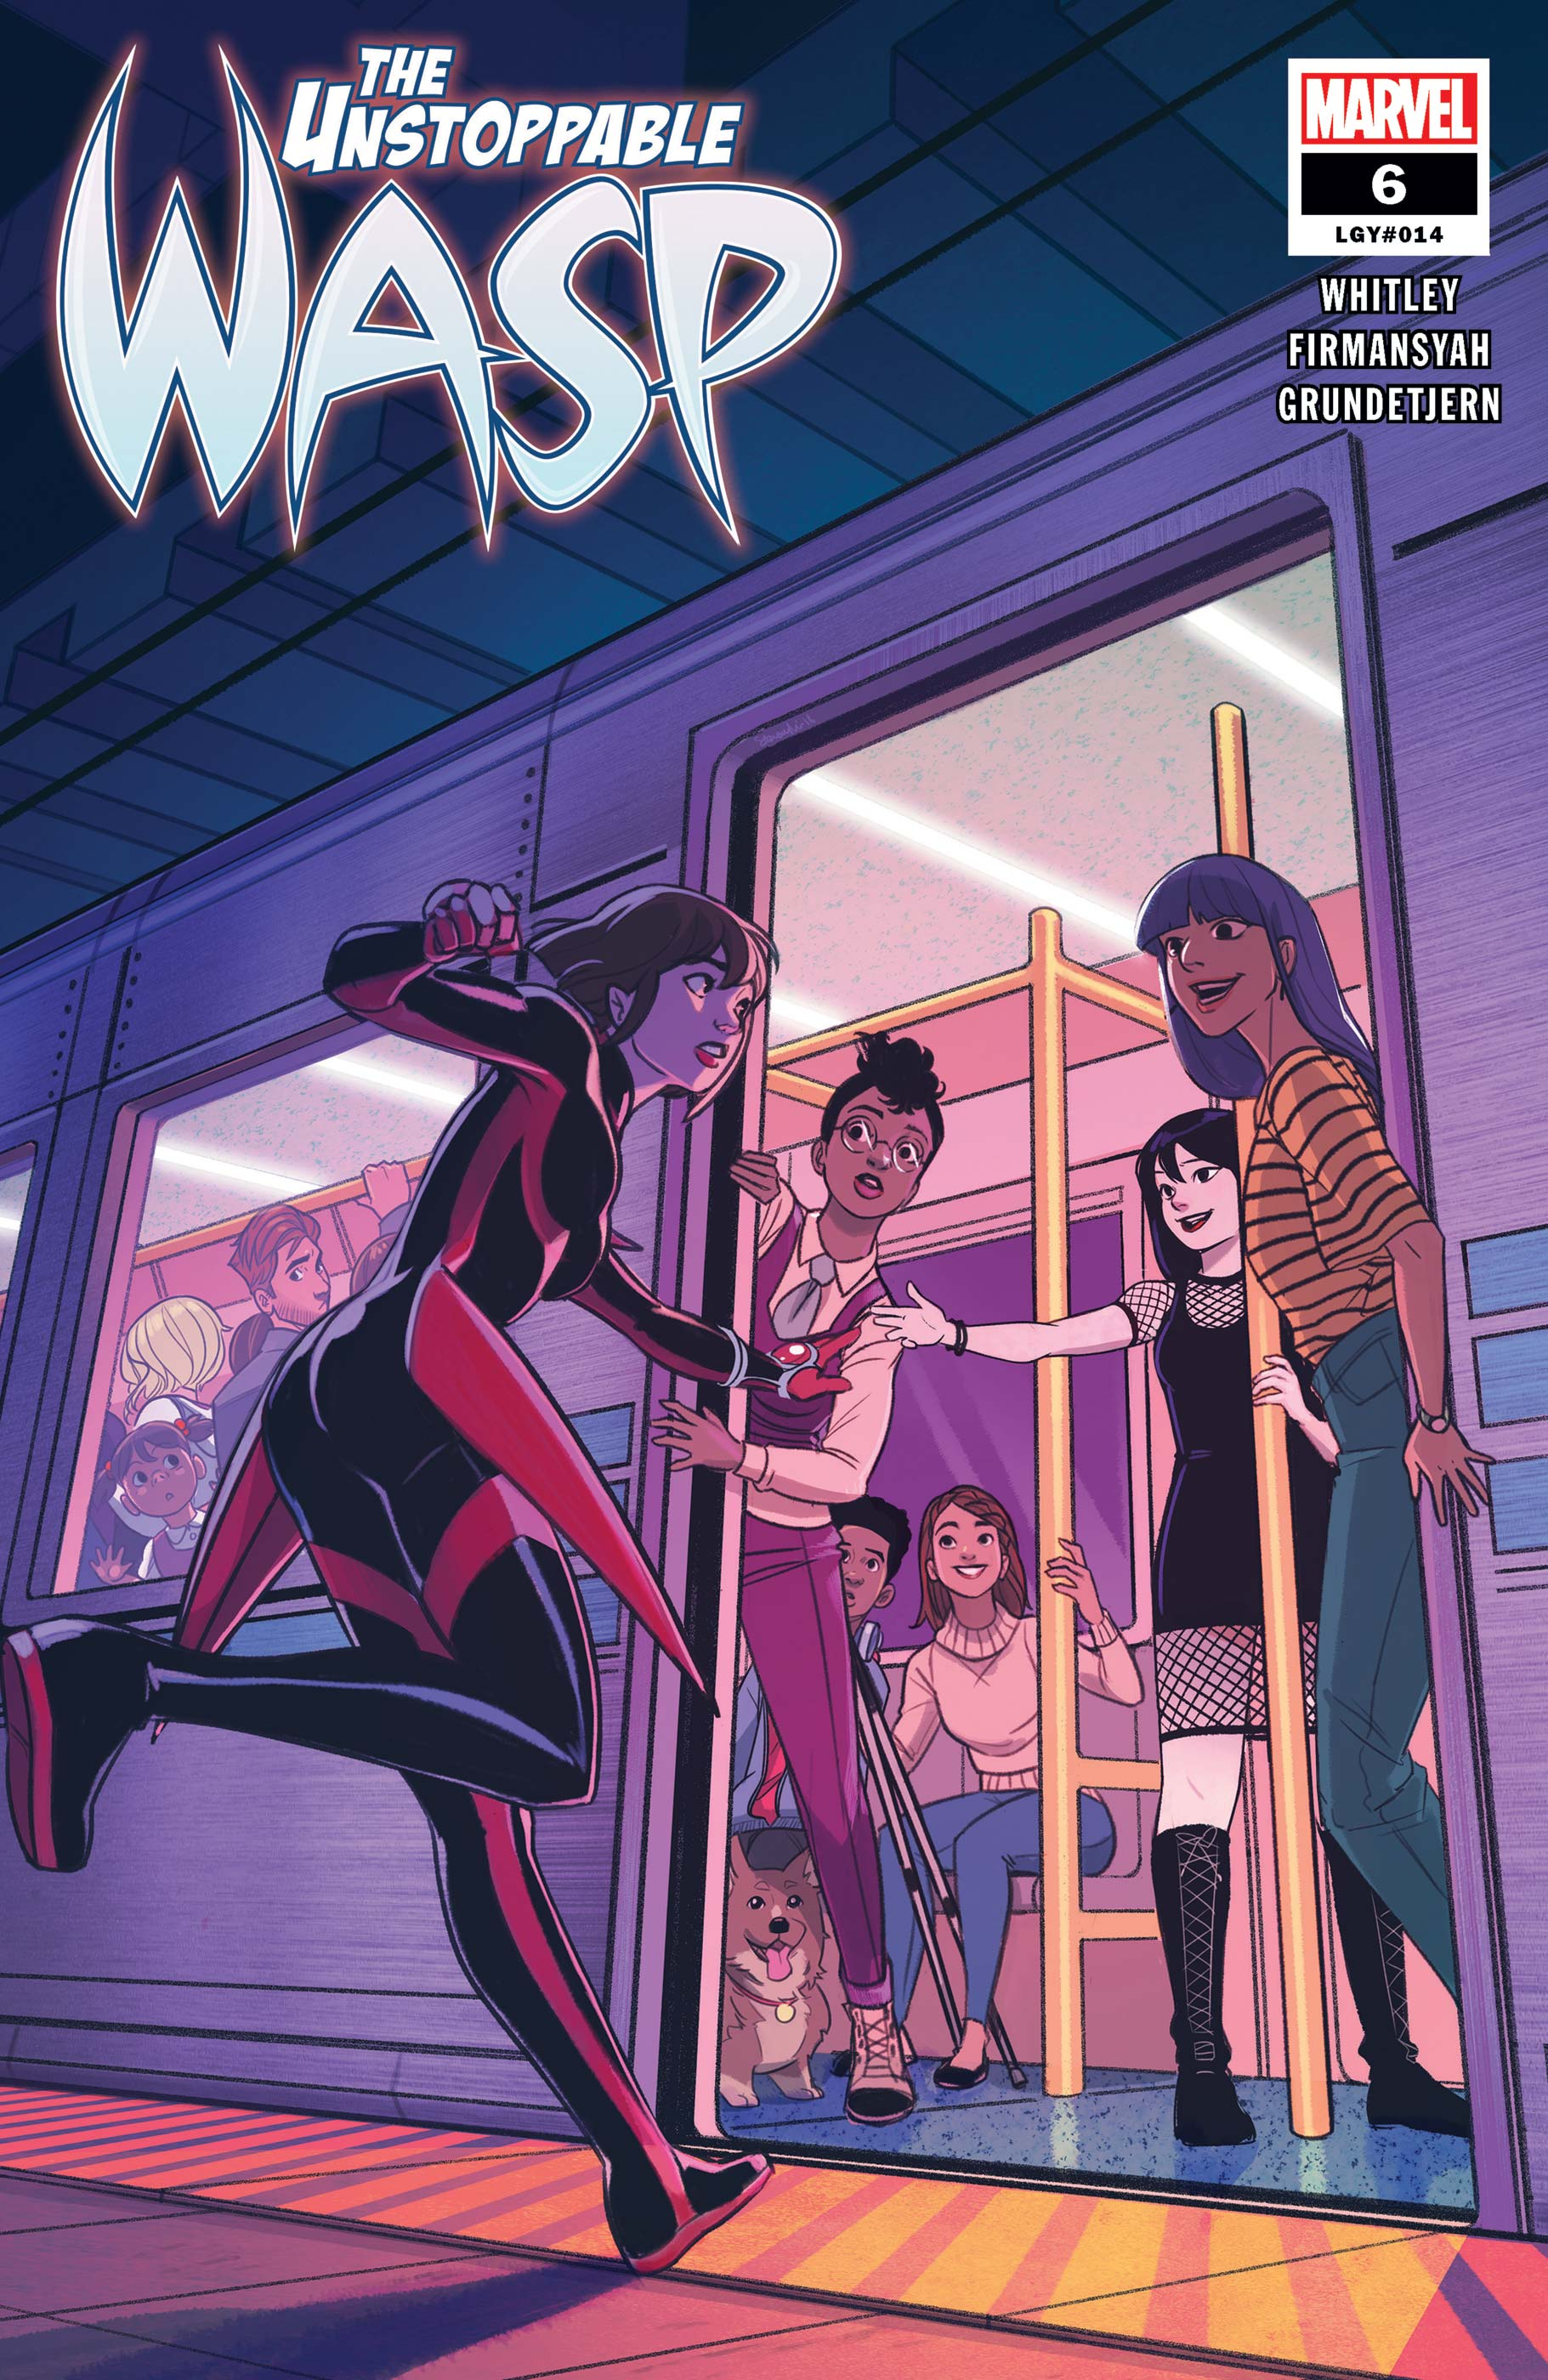 The Unstoppable Wasp (2018) #6 | Comic Issues | Marvel